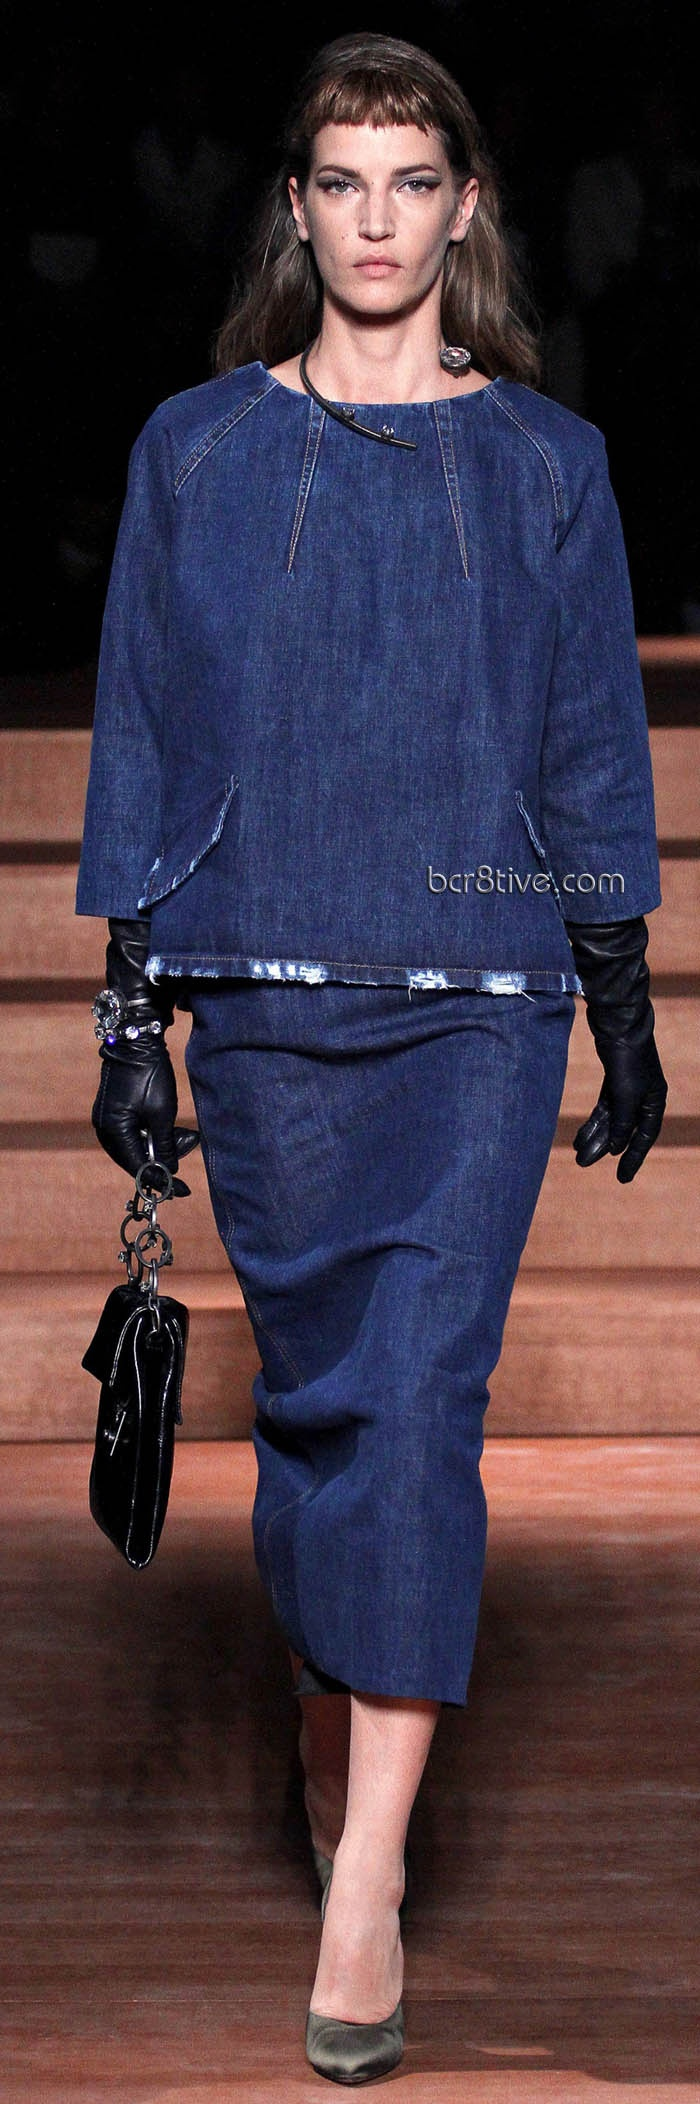 Miu Miu Spring Summer 2013 Ready-To-Wear Collection